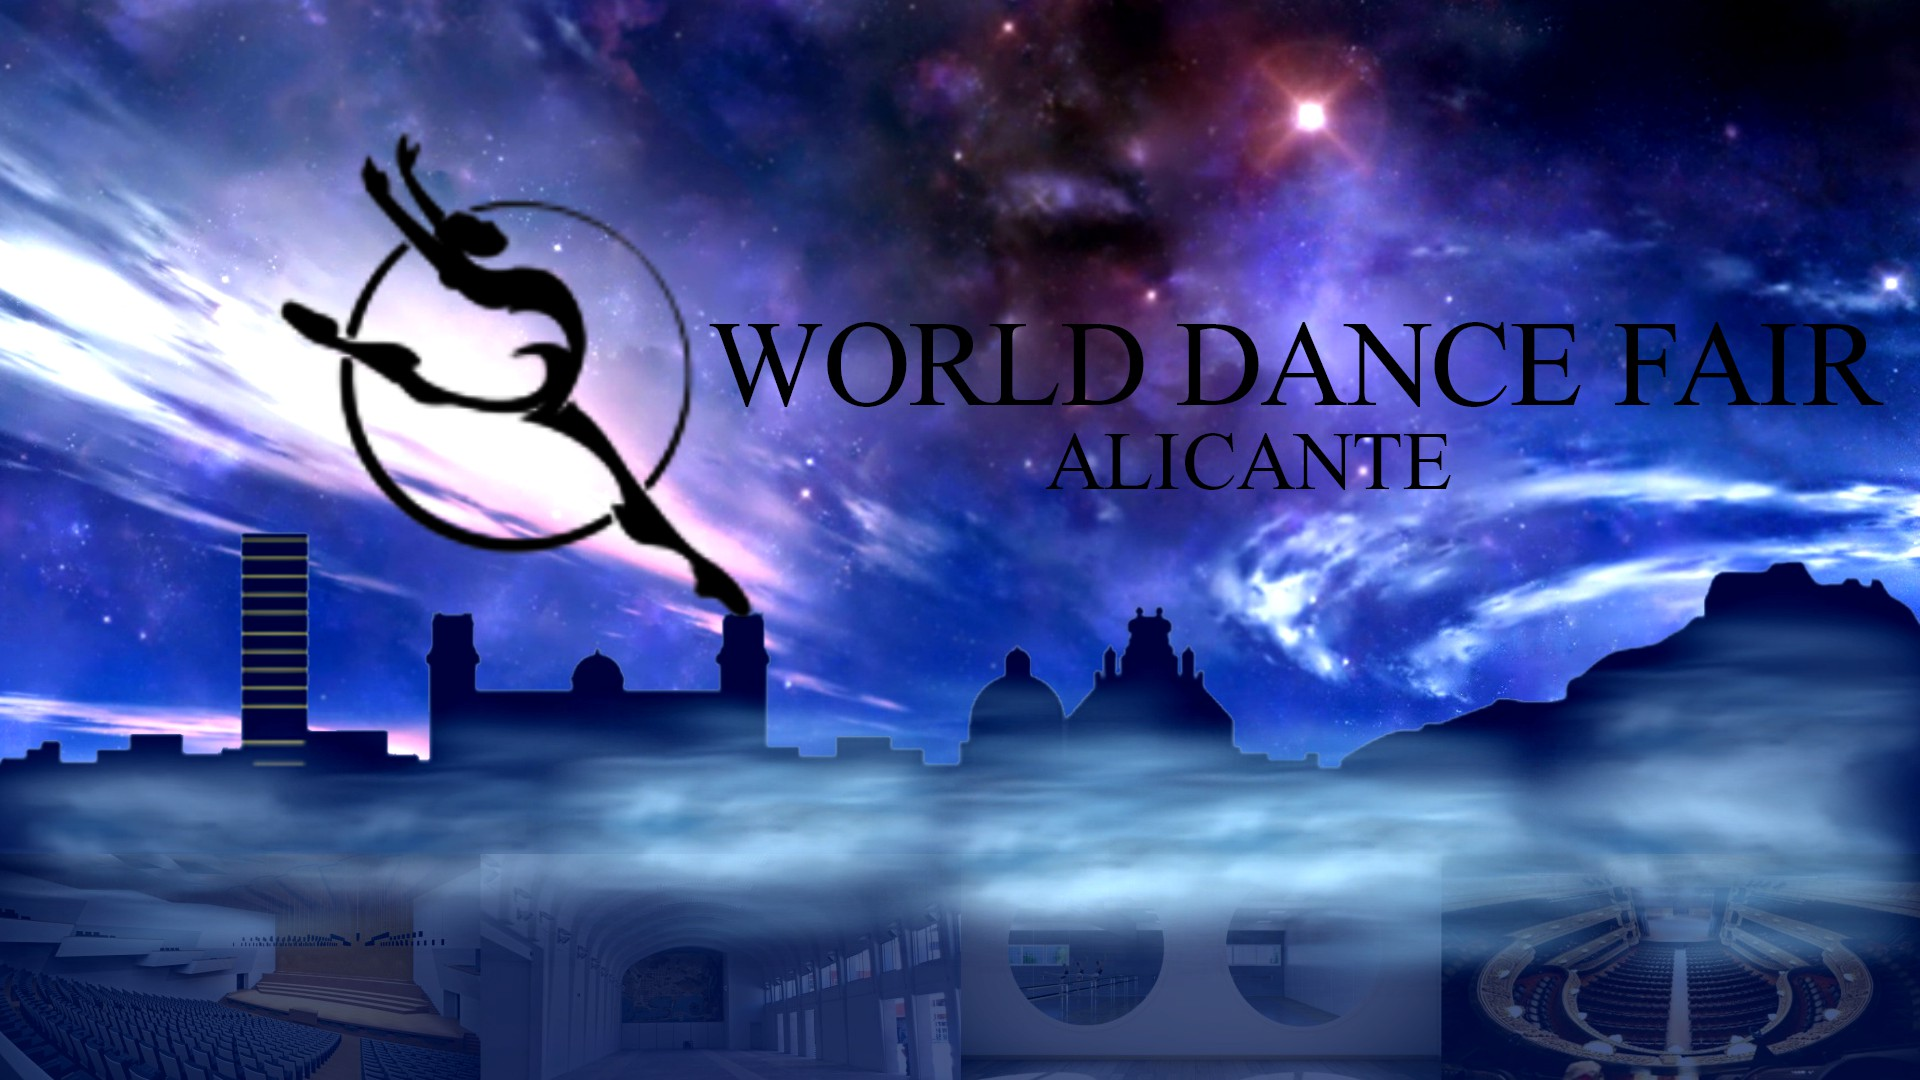 world dance fair 2018 danza baile urban clásica española contemporánea musical international dance school alicante portada